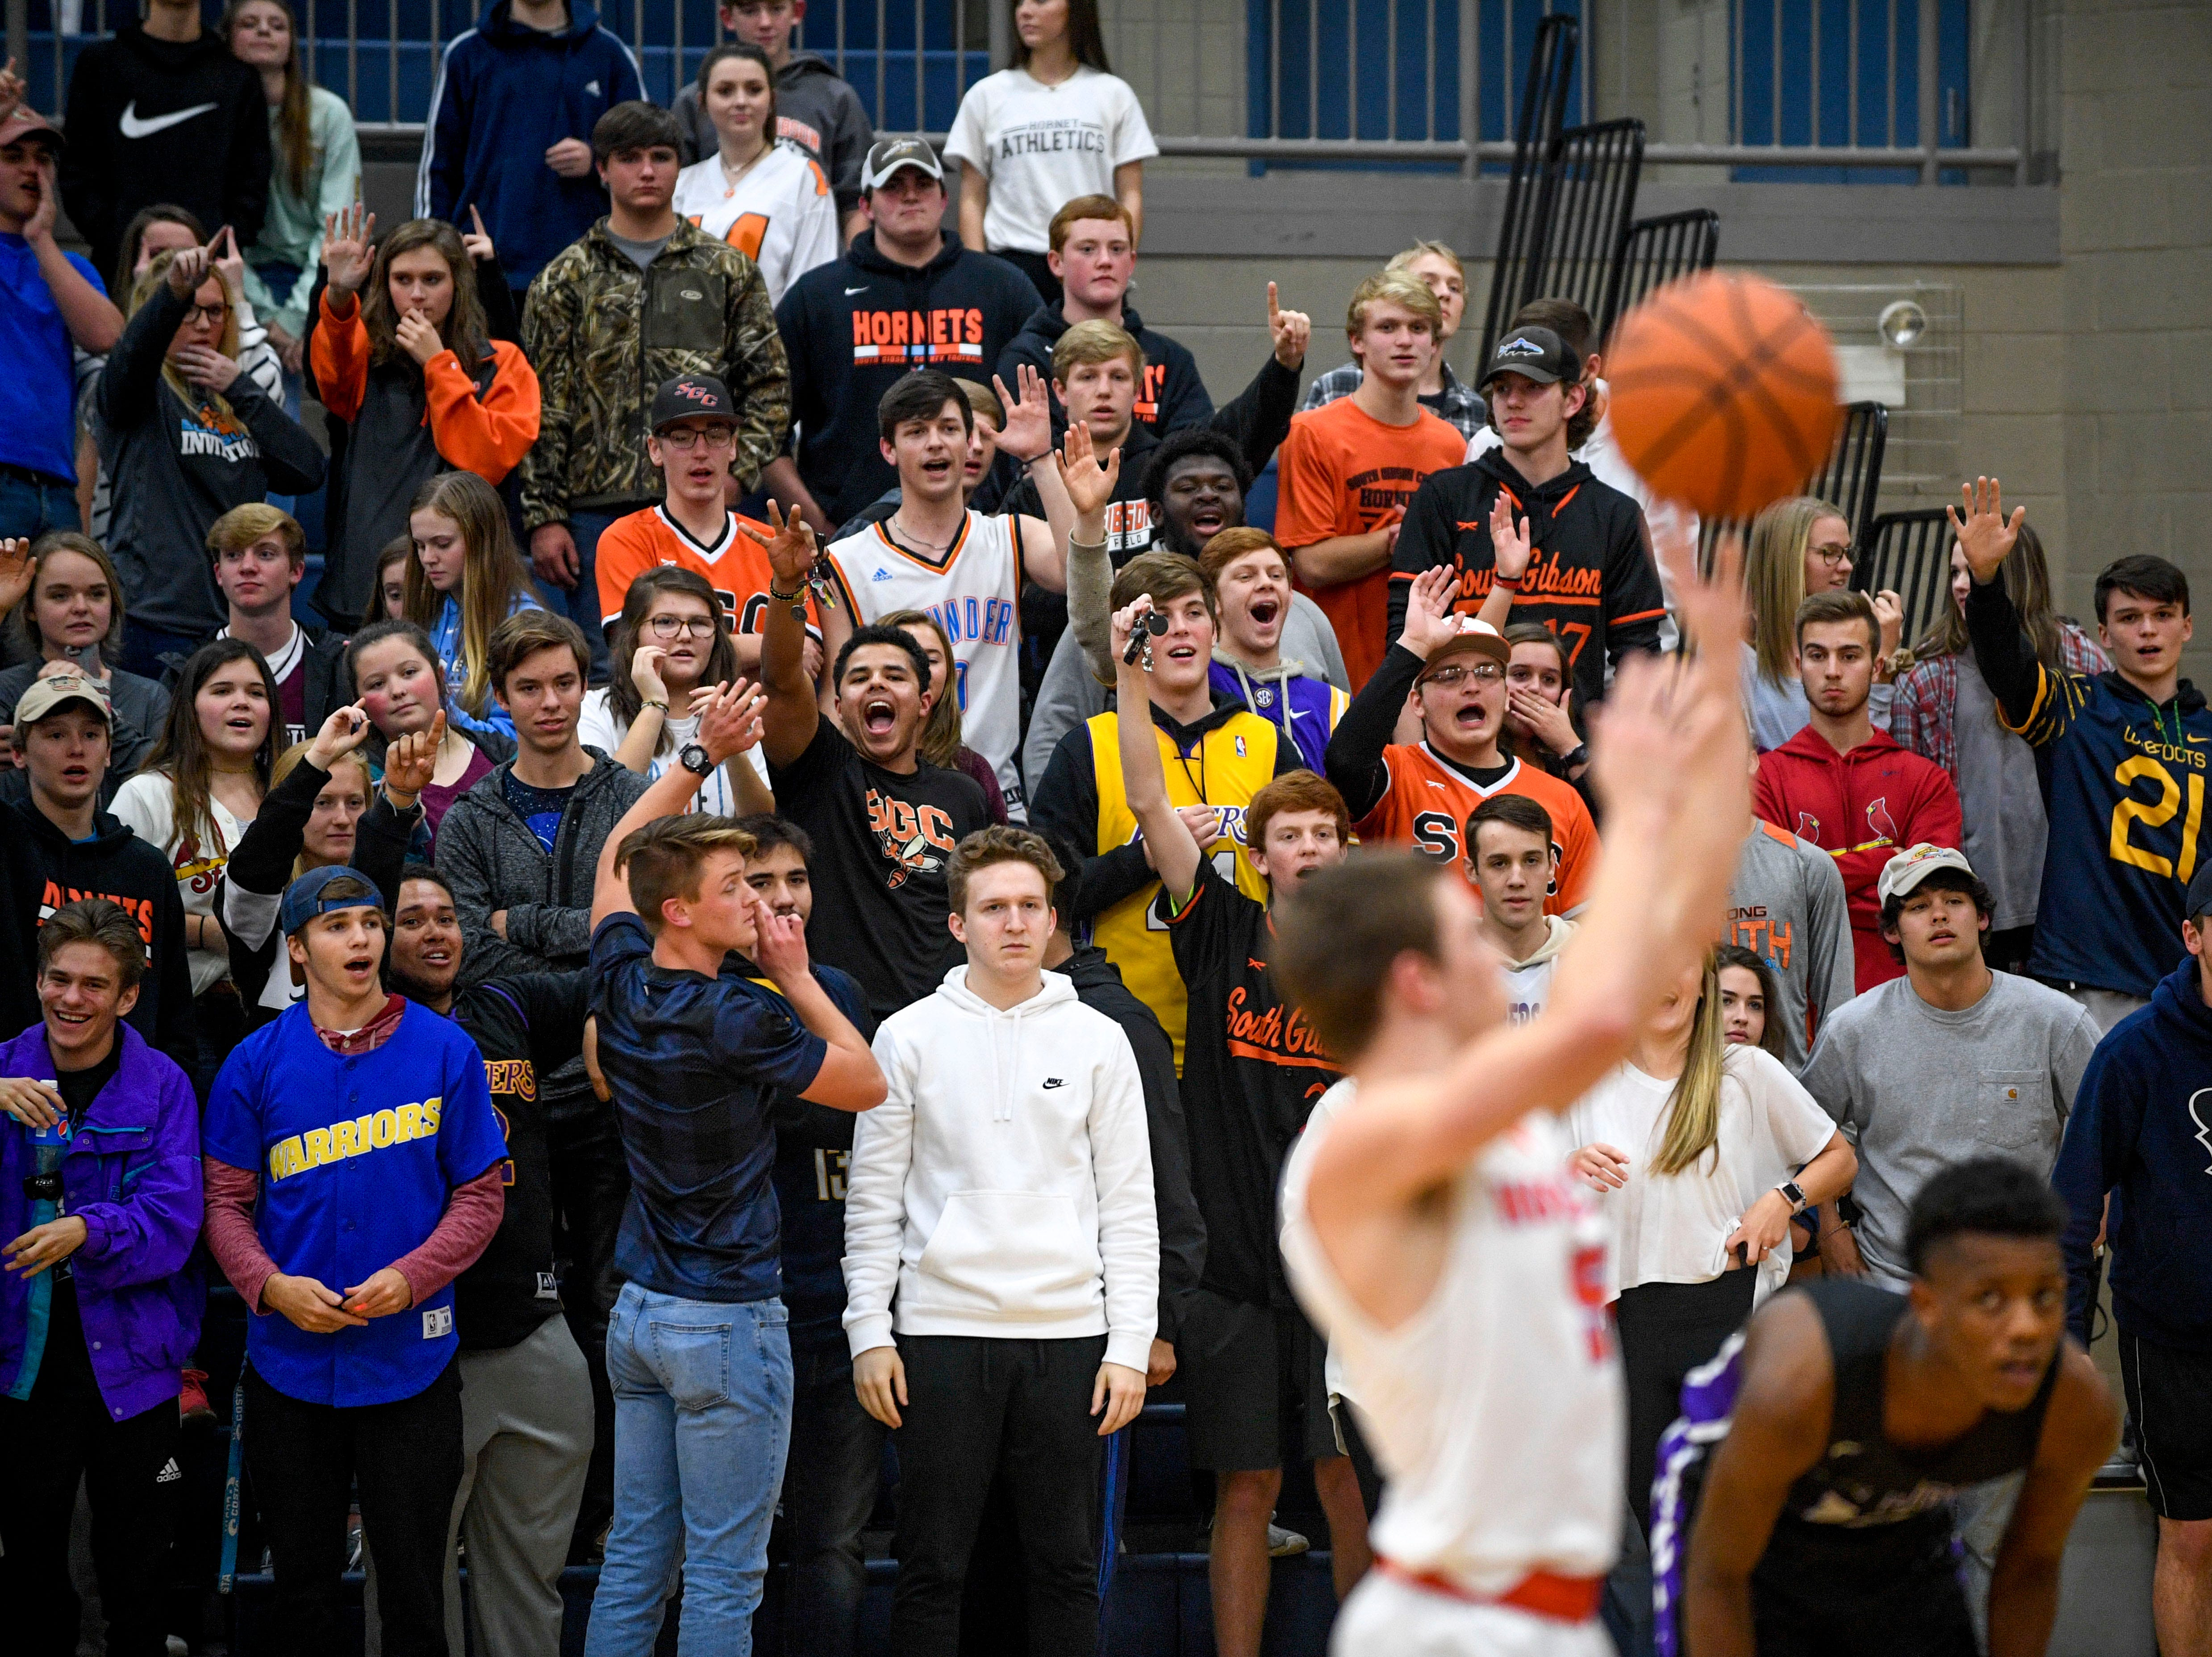 South Gibson fans cheer on Nathan Hicks (5) while shooting a penalty shot that will secure them the lead in a TSSAA boys basketball game between South Gibson and Haywood High Schools at South Gibson High School in Medina, Tenn., on Tuesday, Nov. 27, 2018.